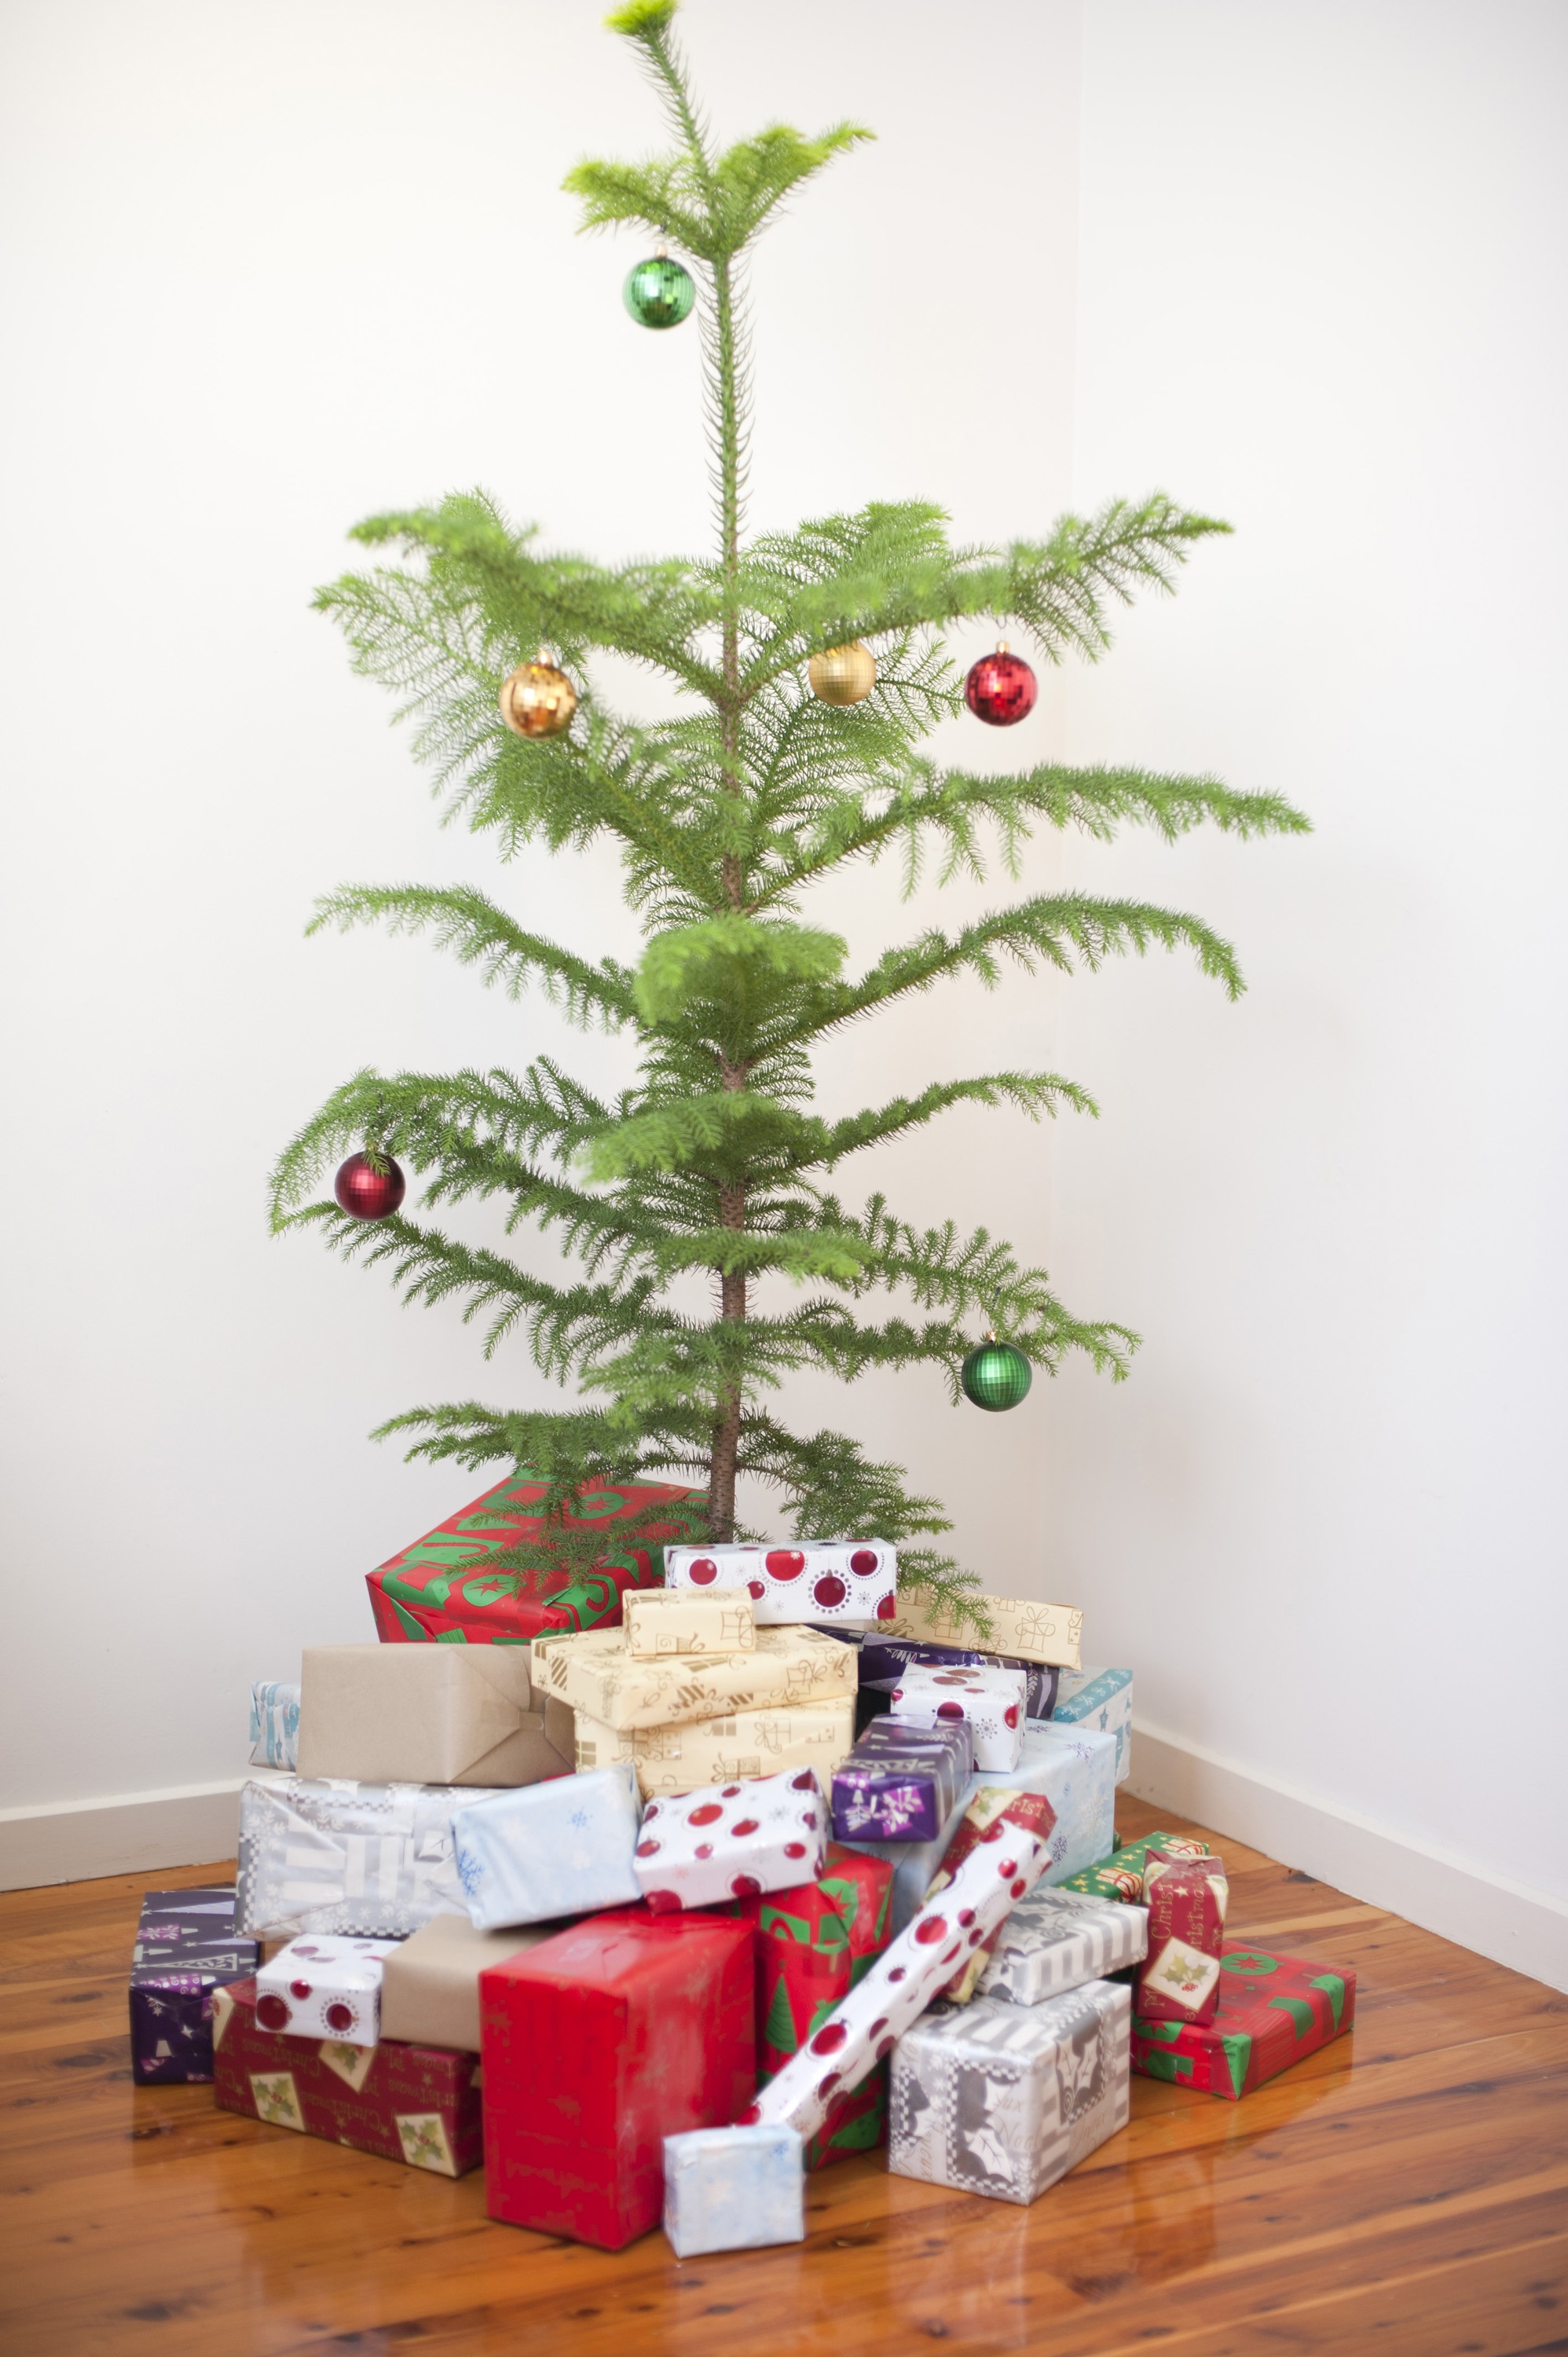 Modern simple natural Christmas tree decorated with colourful baubles and surrounded by a heap of gift-wrapped presents for a family celebration